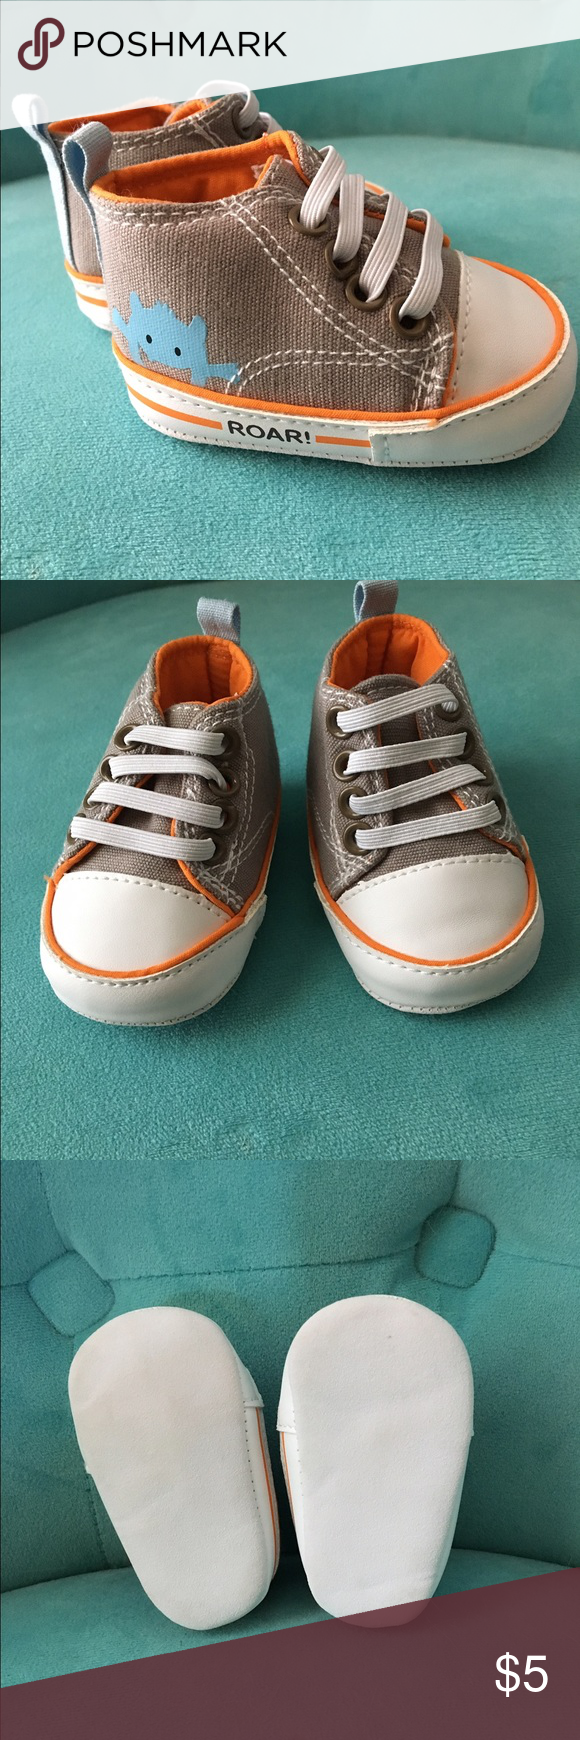 Gray Newborn Soft Bottom Sneakers - Never Worn! These adorable monster sneakers were never worn. We used them to announce our pregnancy and they've been tucked away ever since. Shoes Baby & Walker